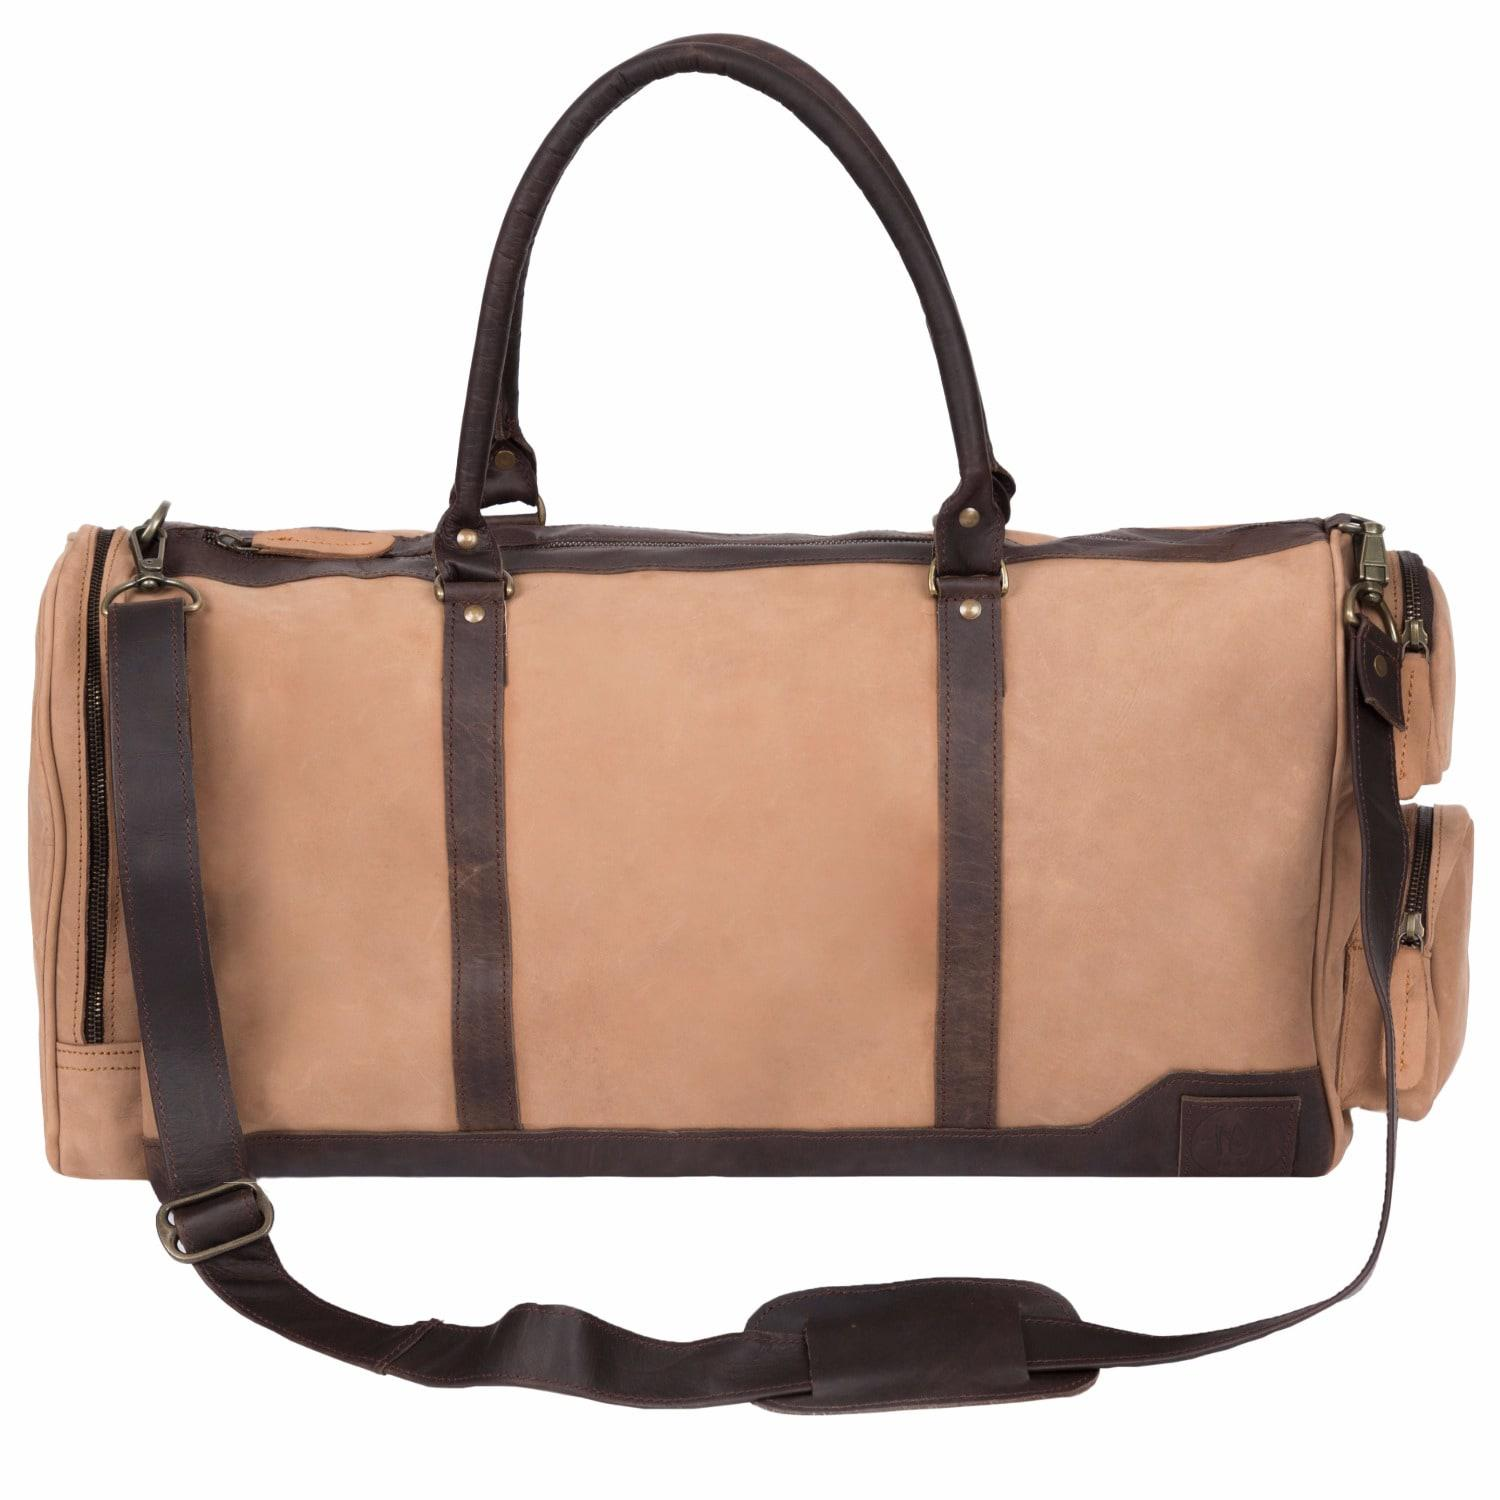 Clearance Cheap Price Free Shipping Brand New Unisex Deep leather holdall/duffle in Vintage Cognac MAHI Leather With Paypal Sale Online Discount Inexpensive QFhKcVHnRU